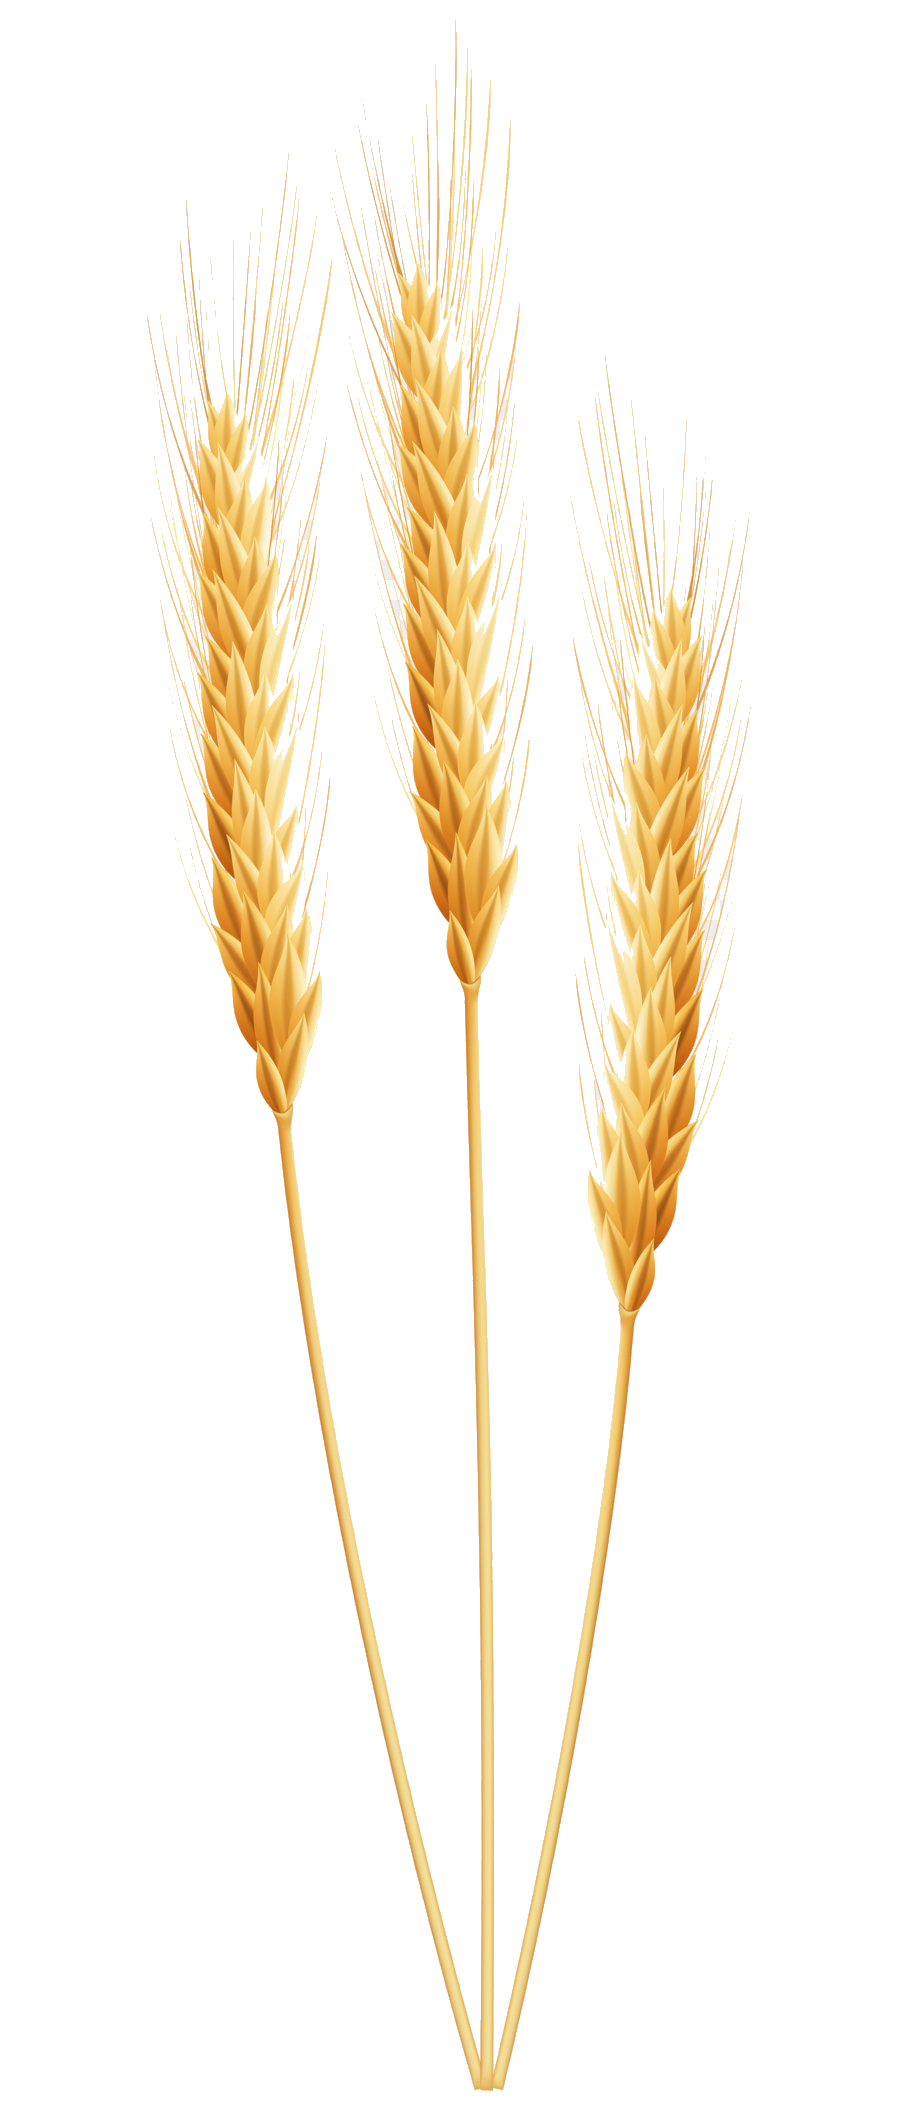 Wheat Clipart Wheet Free On Transparent Png.